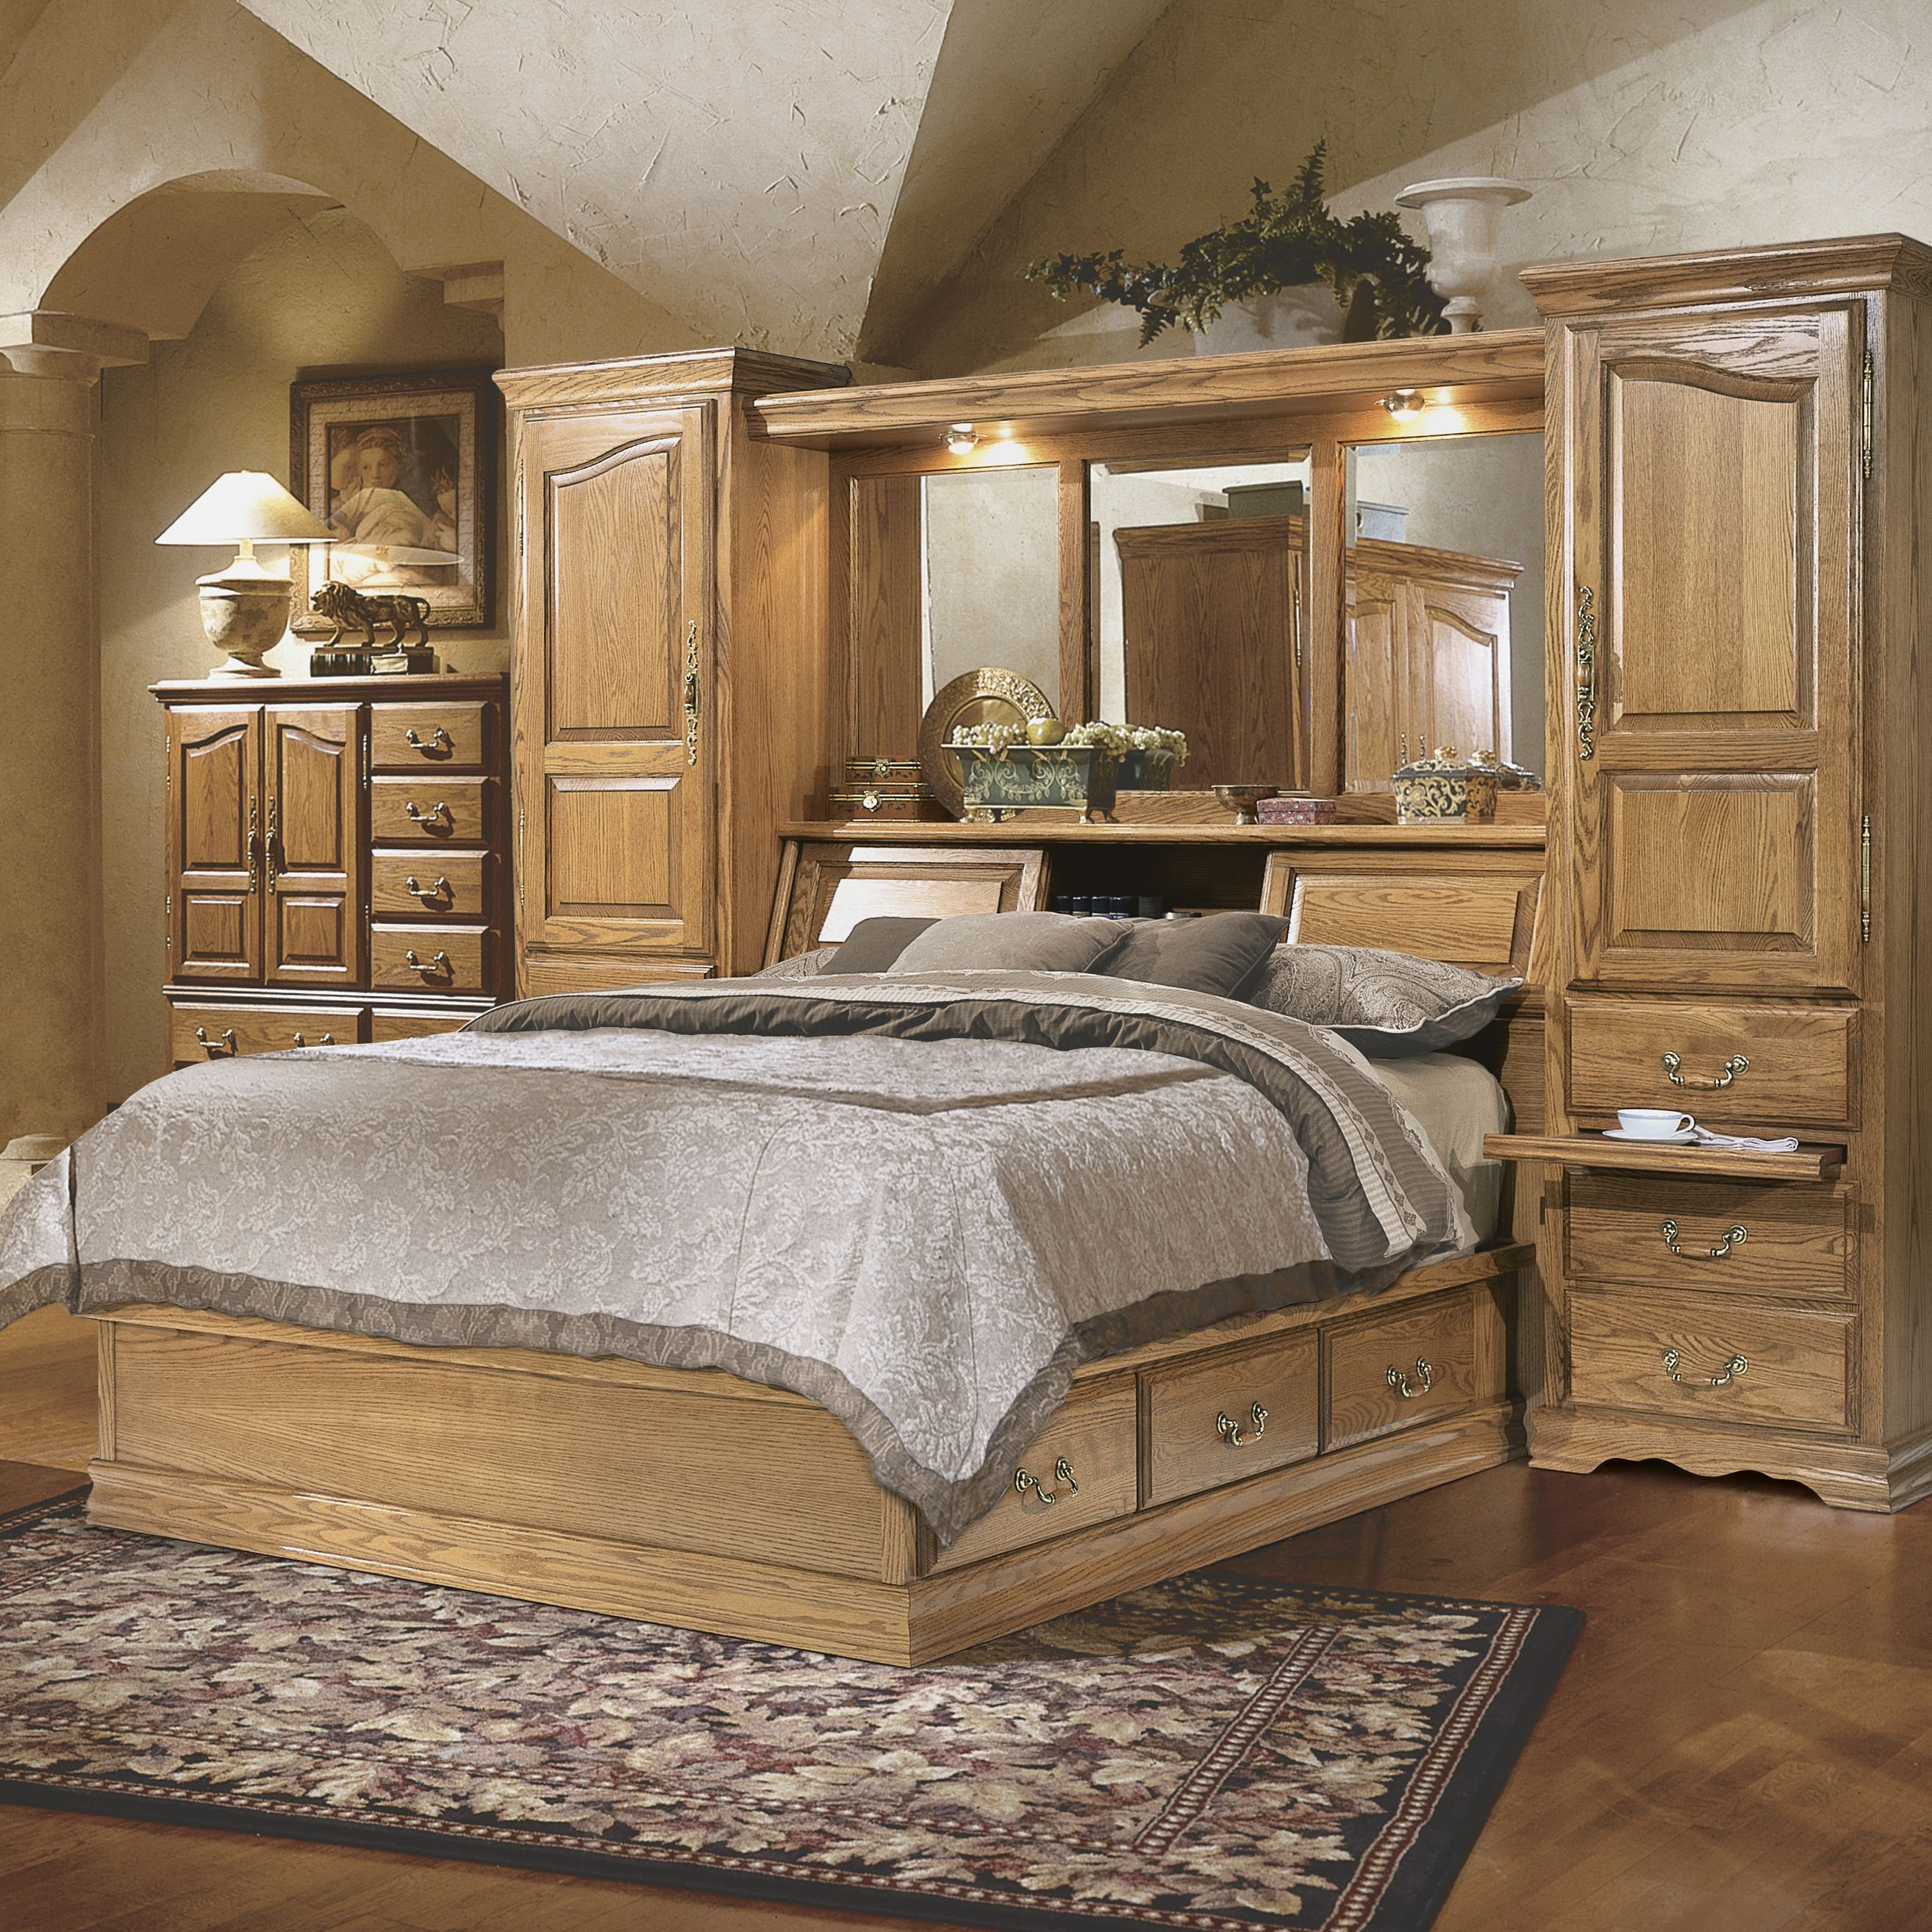 Master-piece Pier Group Bedroom Set Provides Maximum